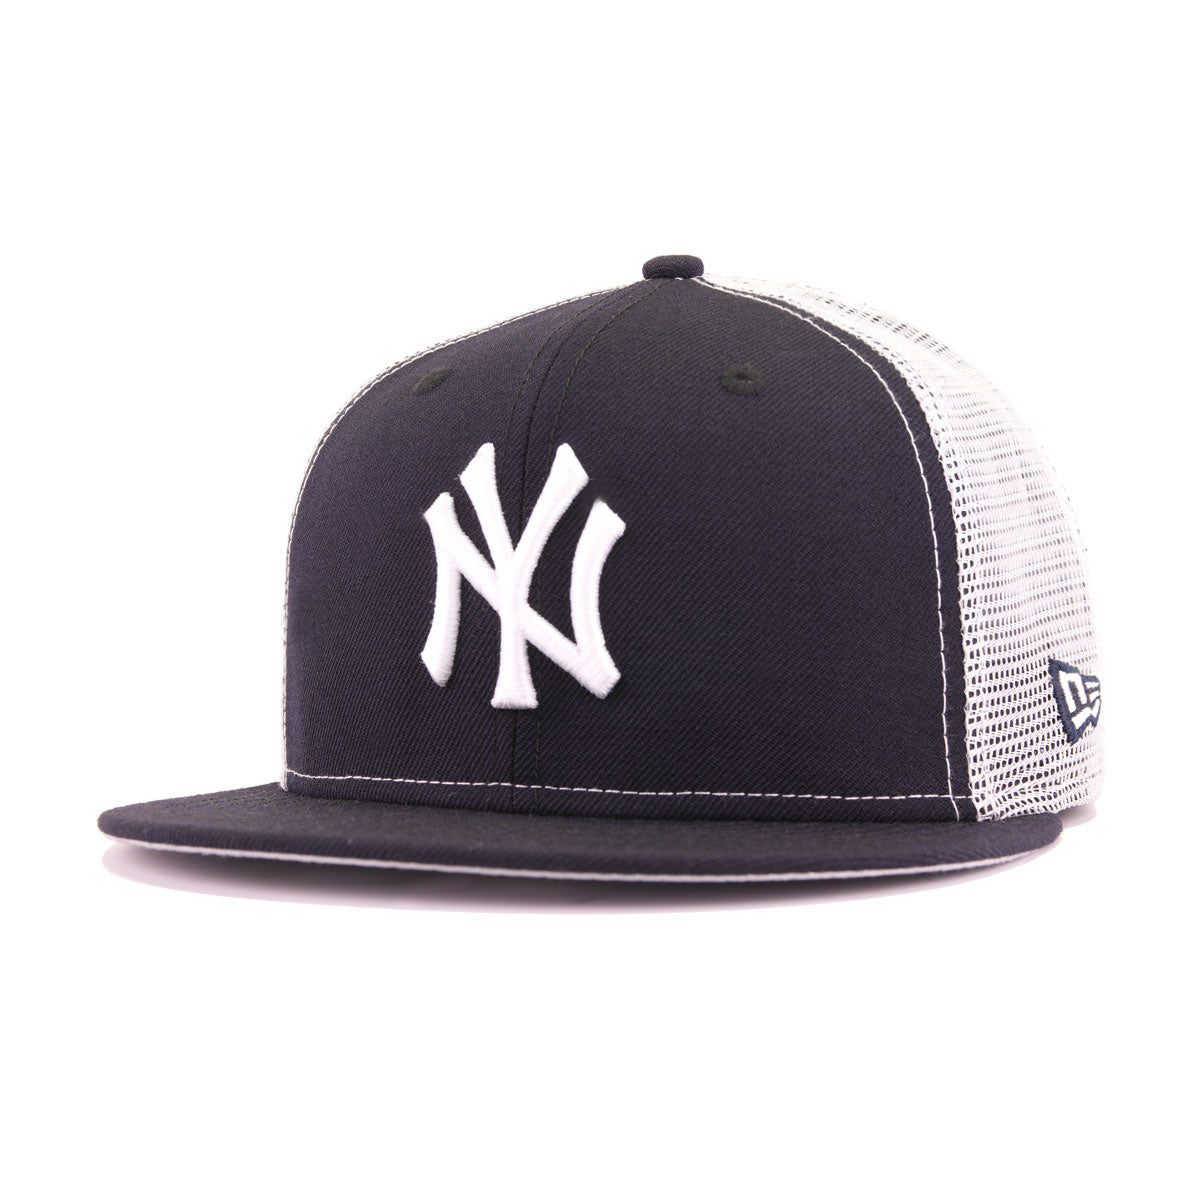 New York Yankees Navy White Trucker New Era 9Fifty Snapback